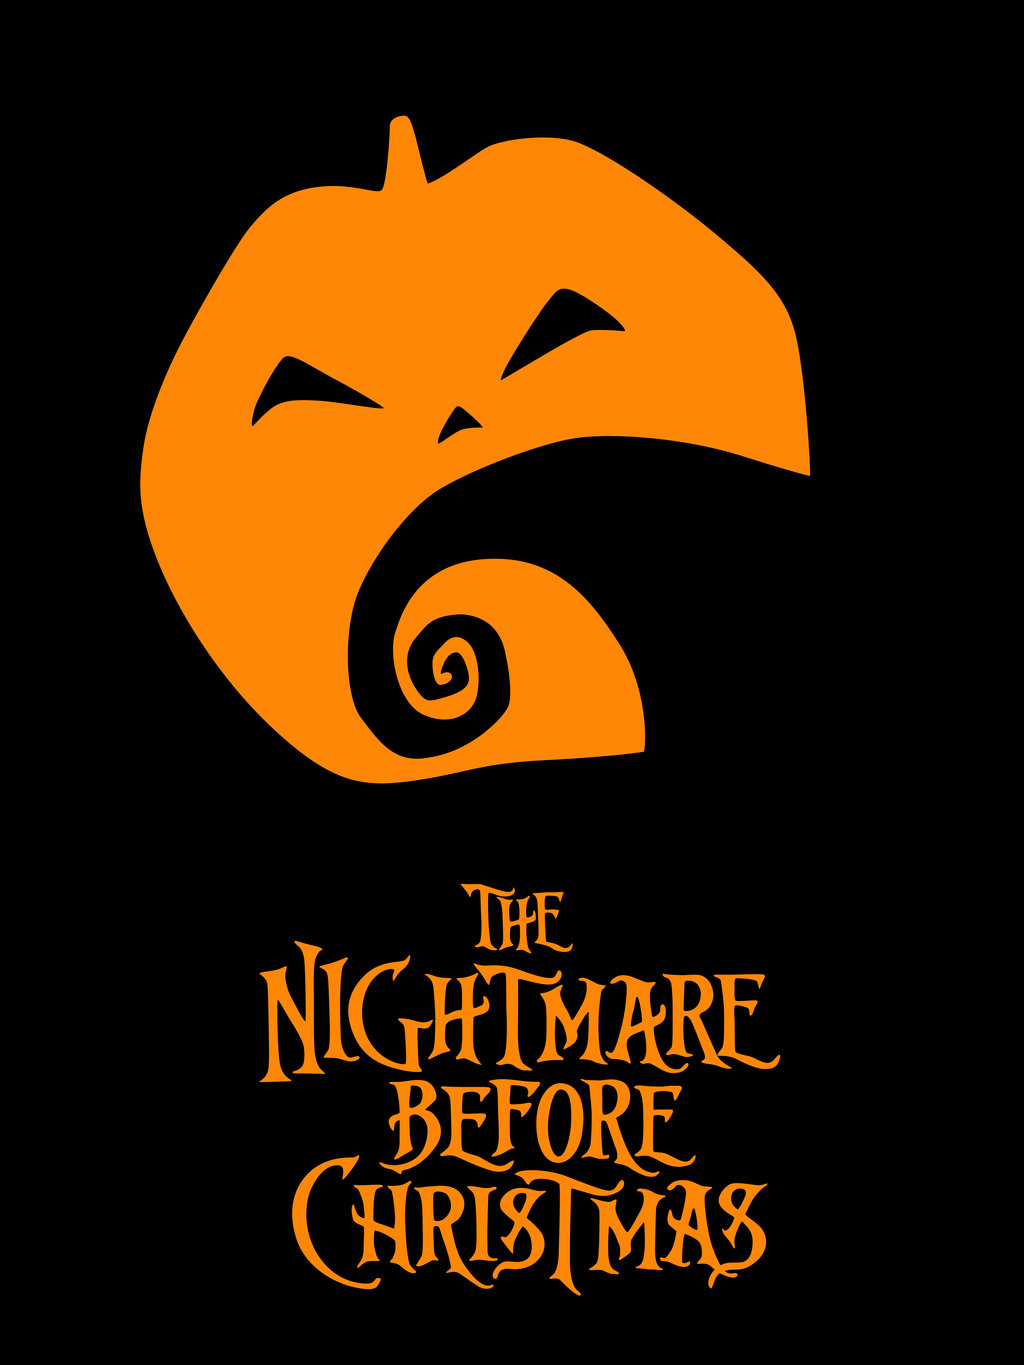 ... Nerfherder: Movie Poster Art: The Nightmare Before Christmas (1993